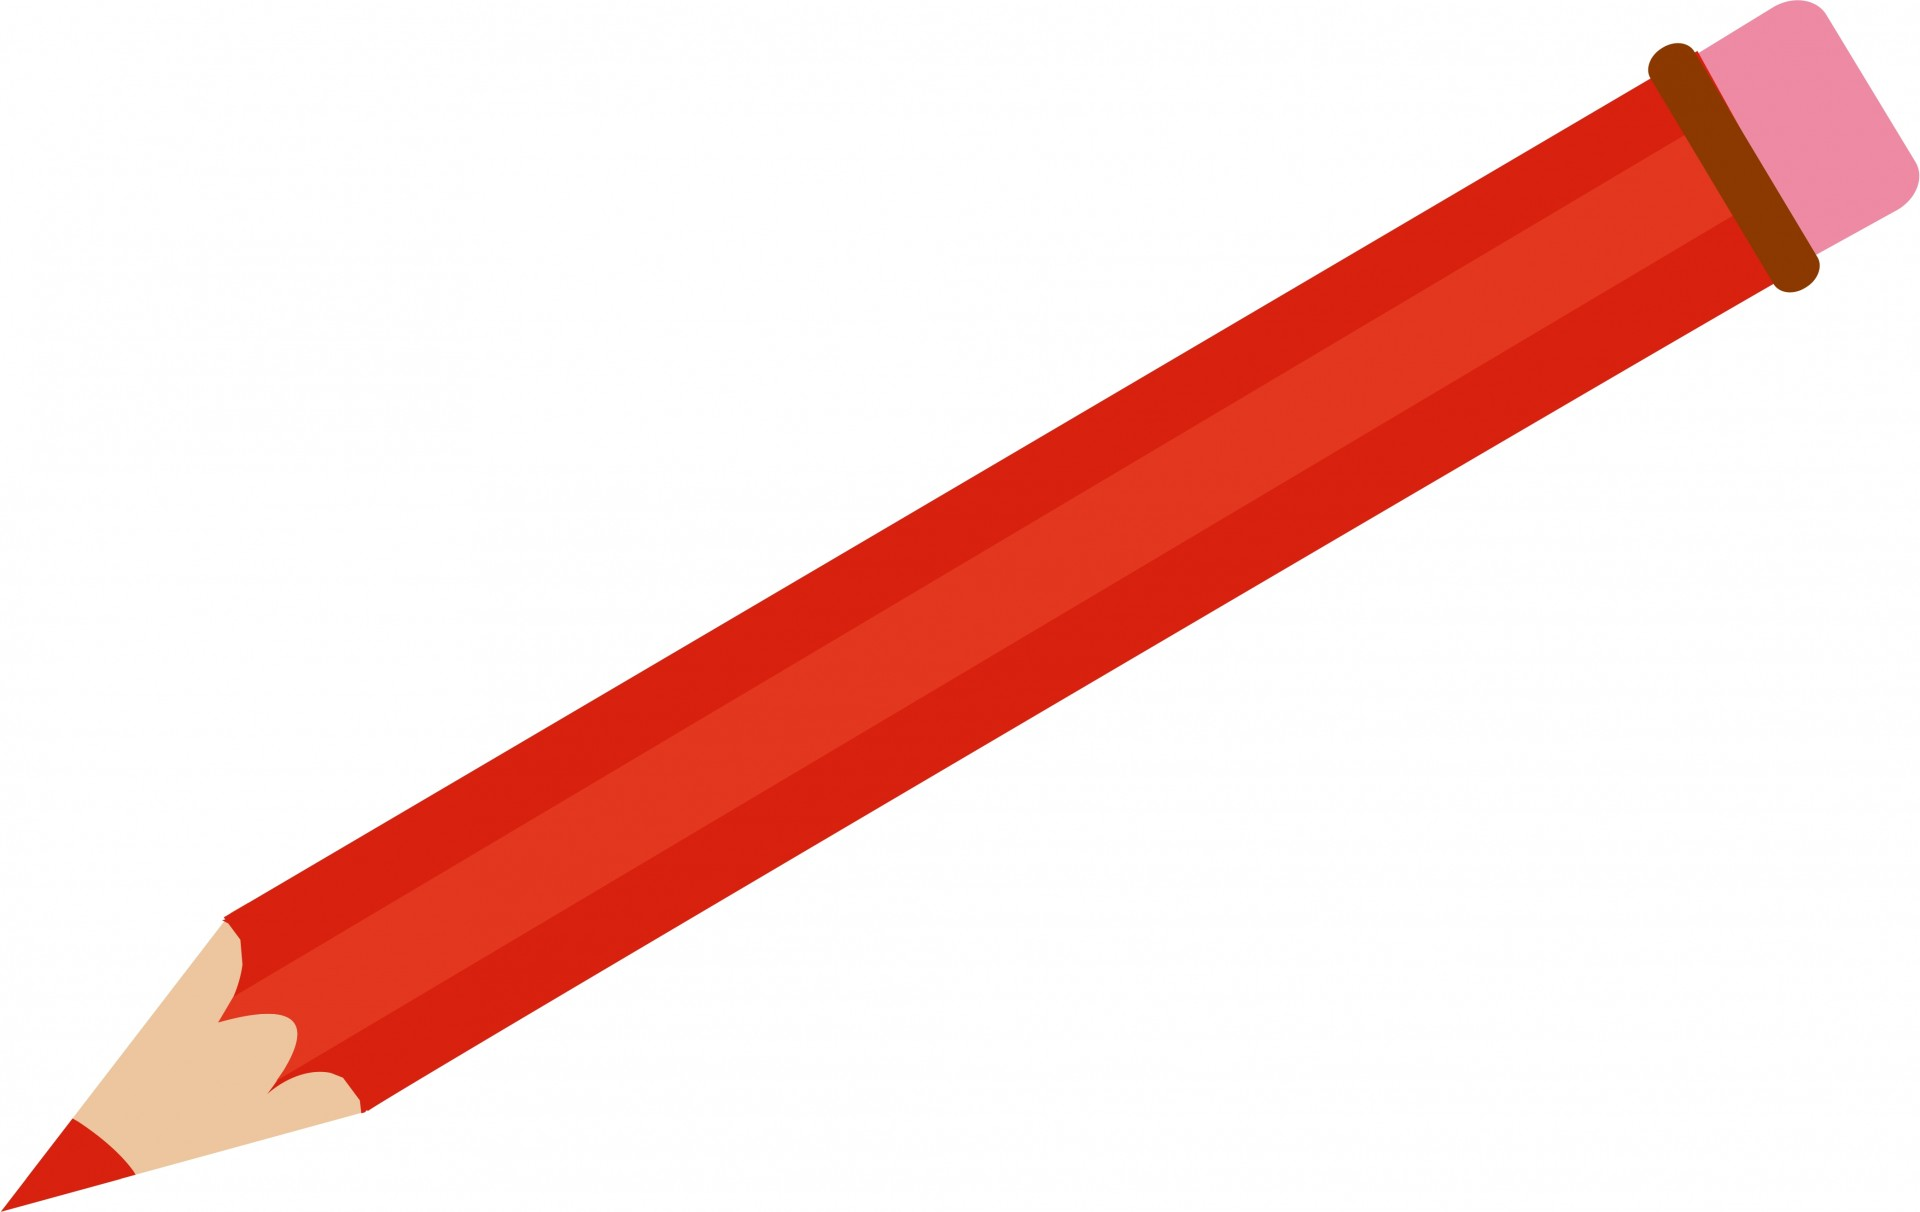 Pencils clipart. Red pencil free stock